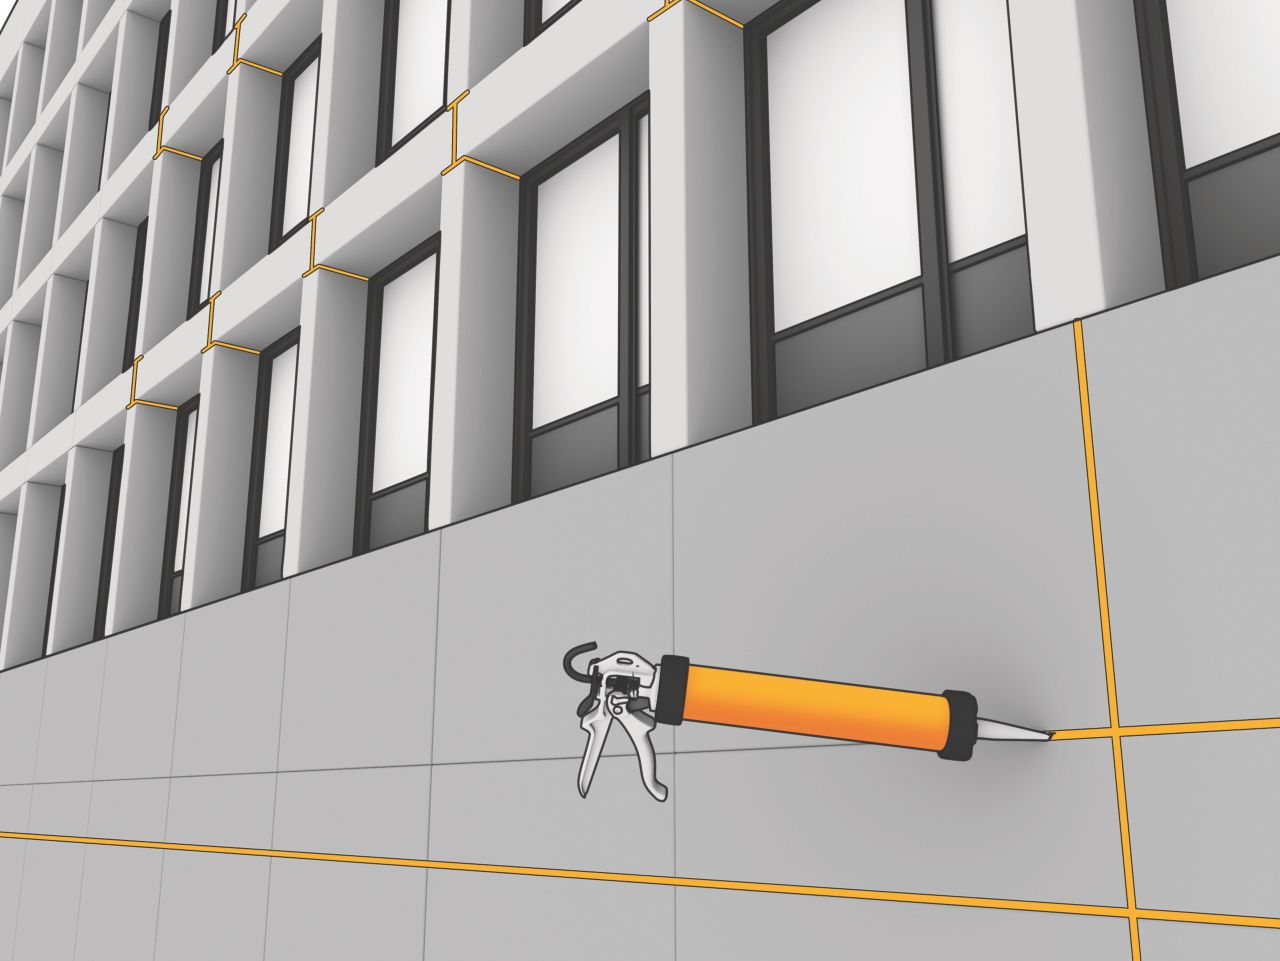 Sealing connection joints in facade with Sikaflex elastic joint sealant